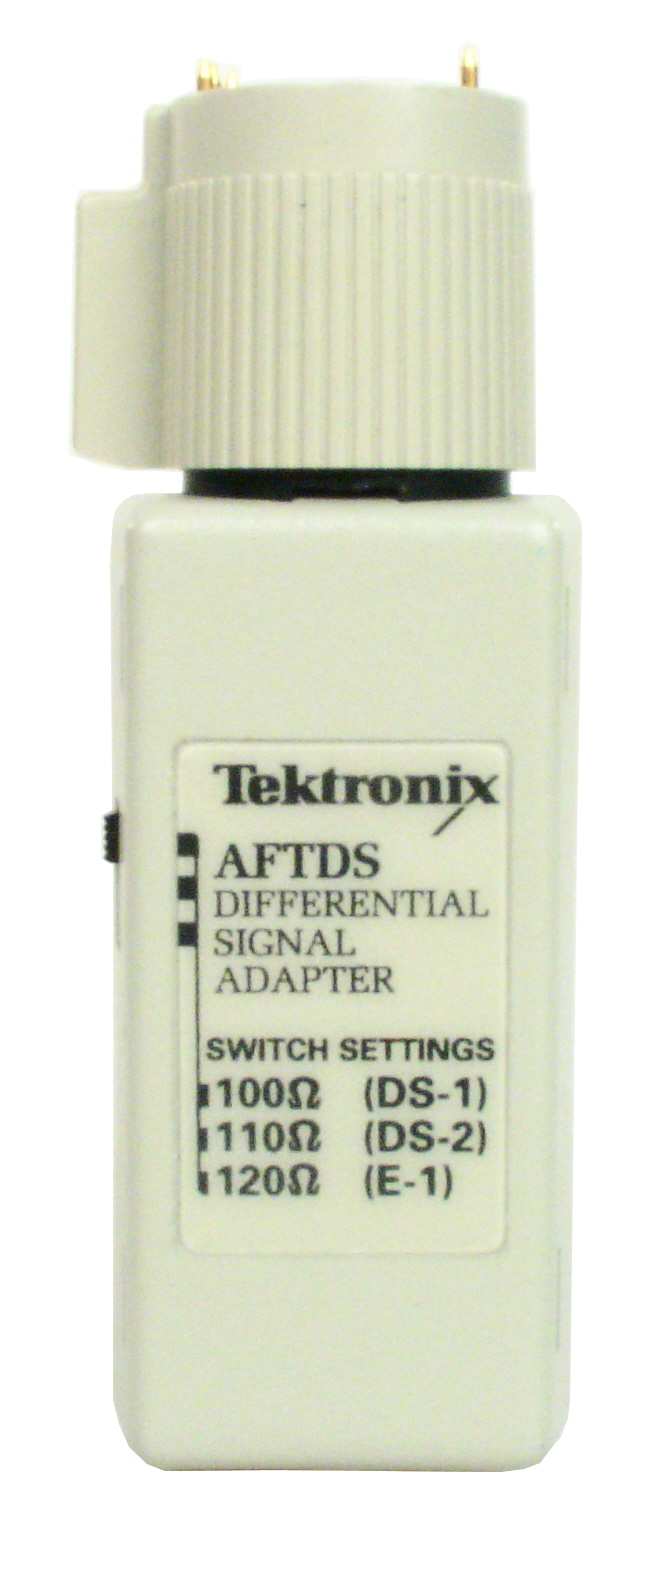 Tektronix AFTDS for sale